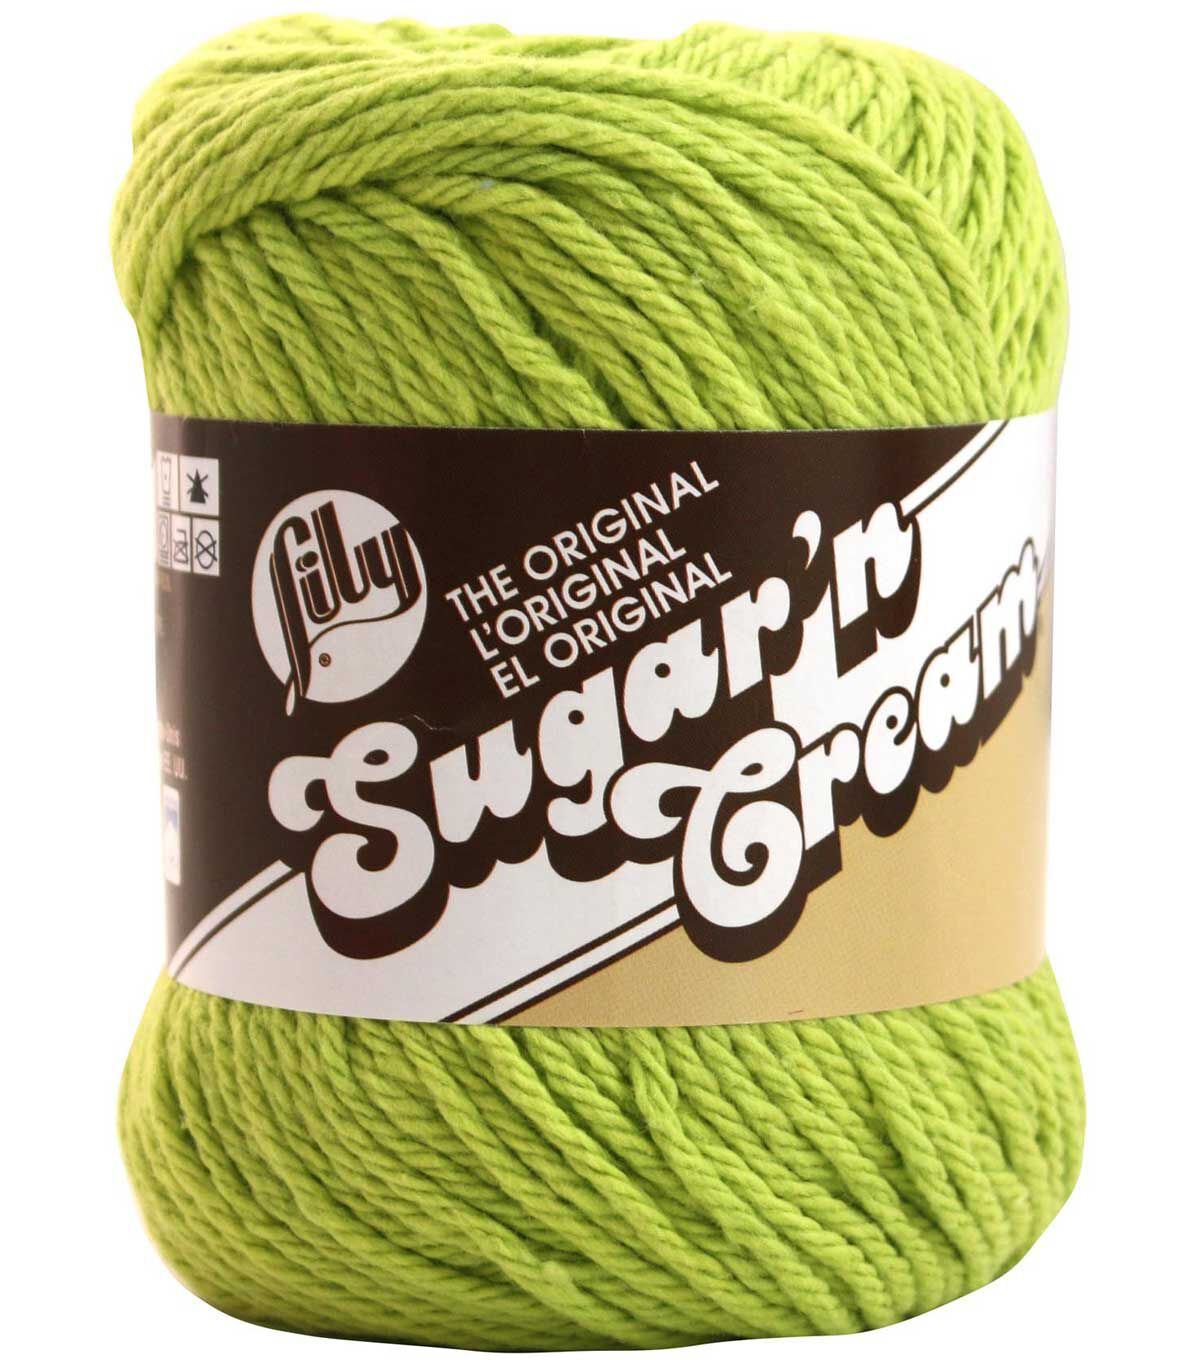 Lily Sugarn Cream Solids Yarn